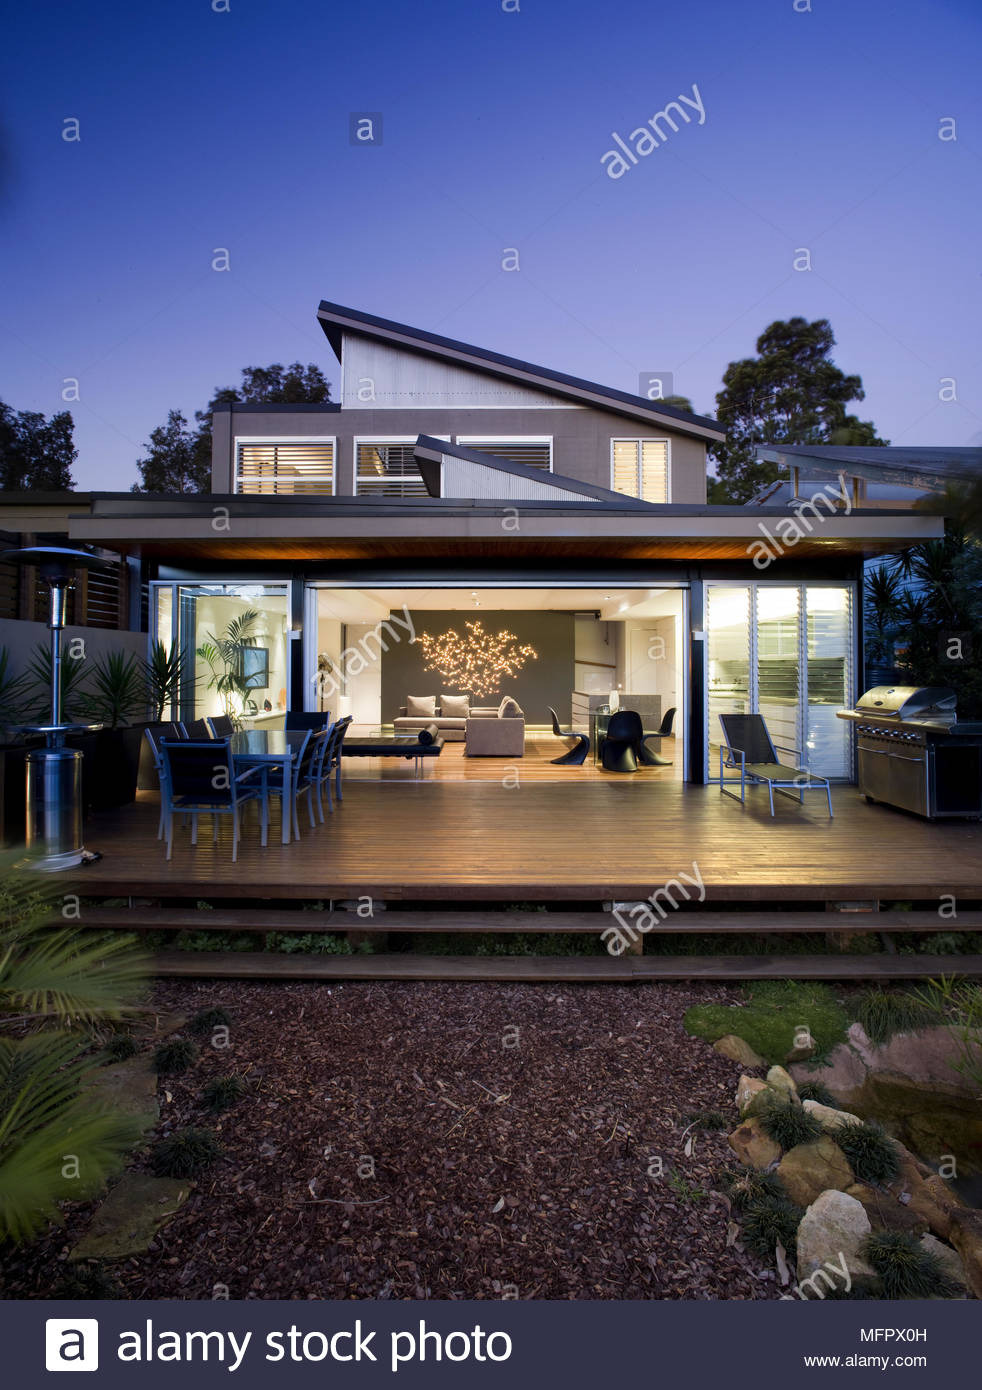 exterior of modern house with patio at night MFPX0H